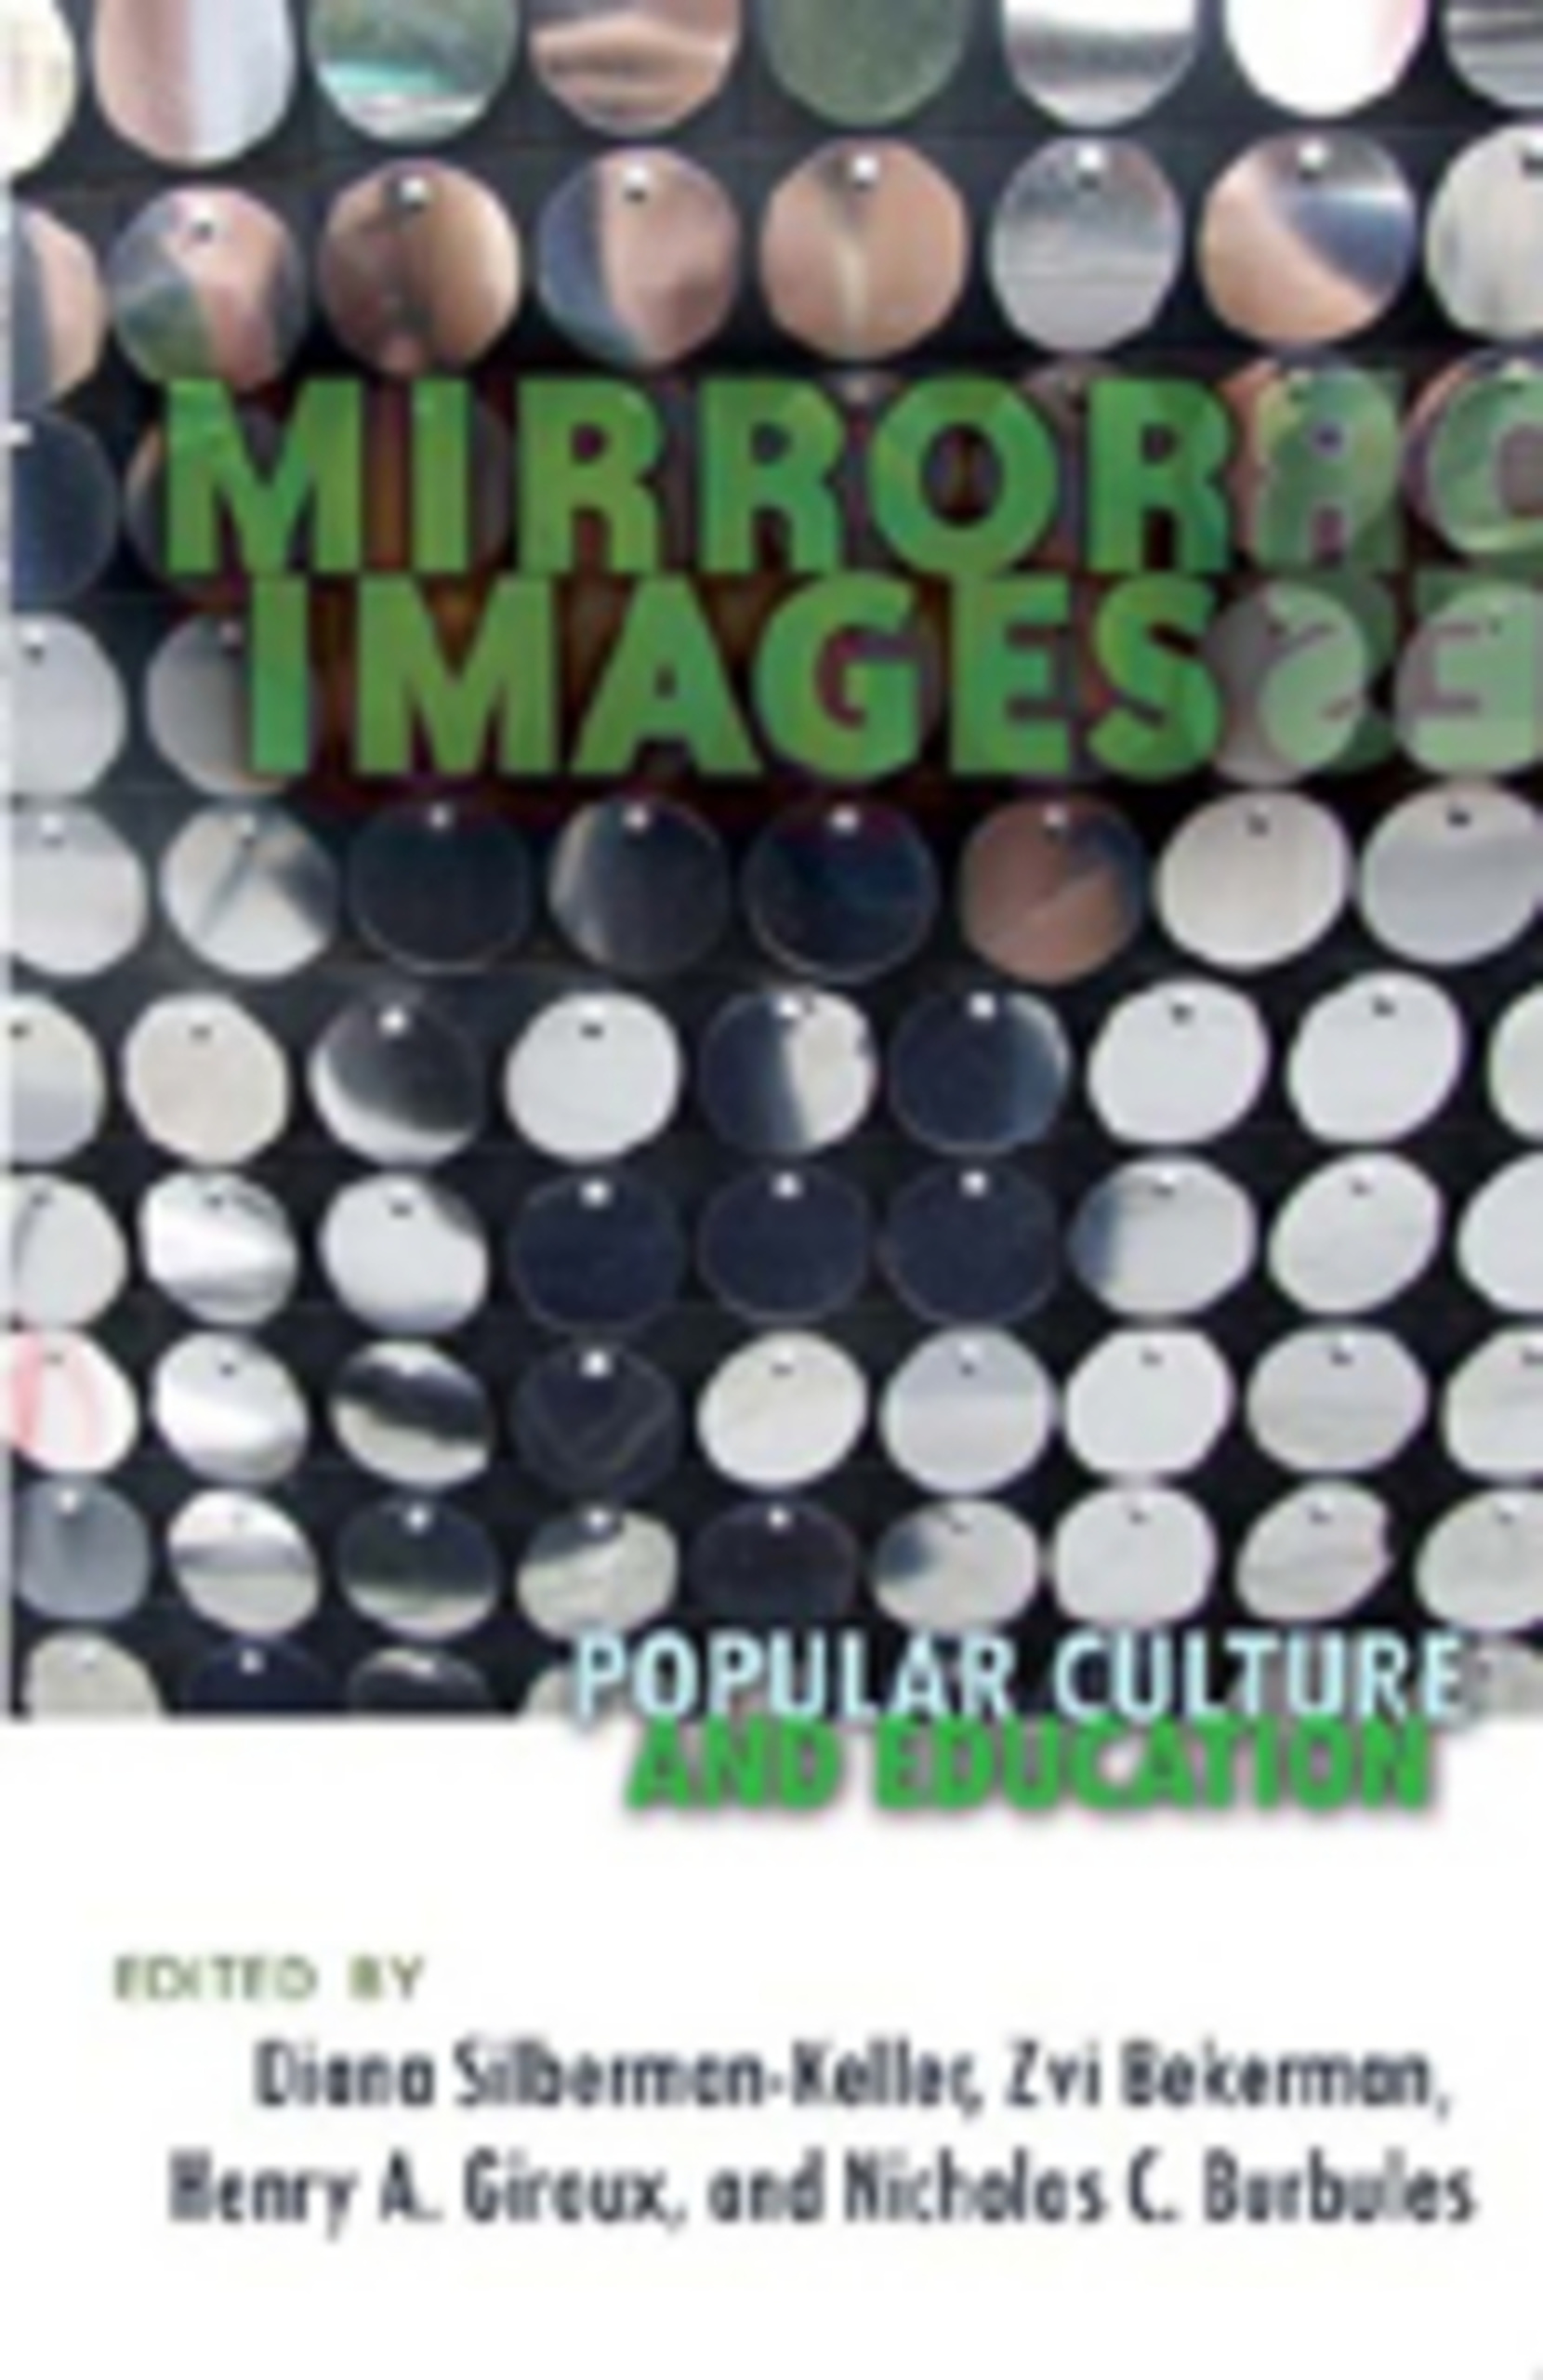 Title: Mirror Images